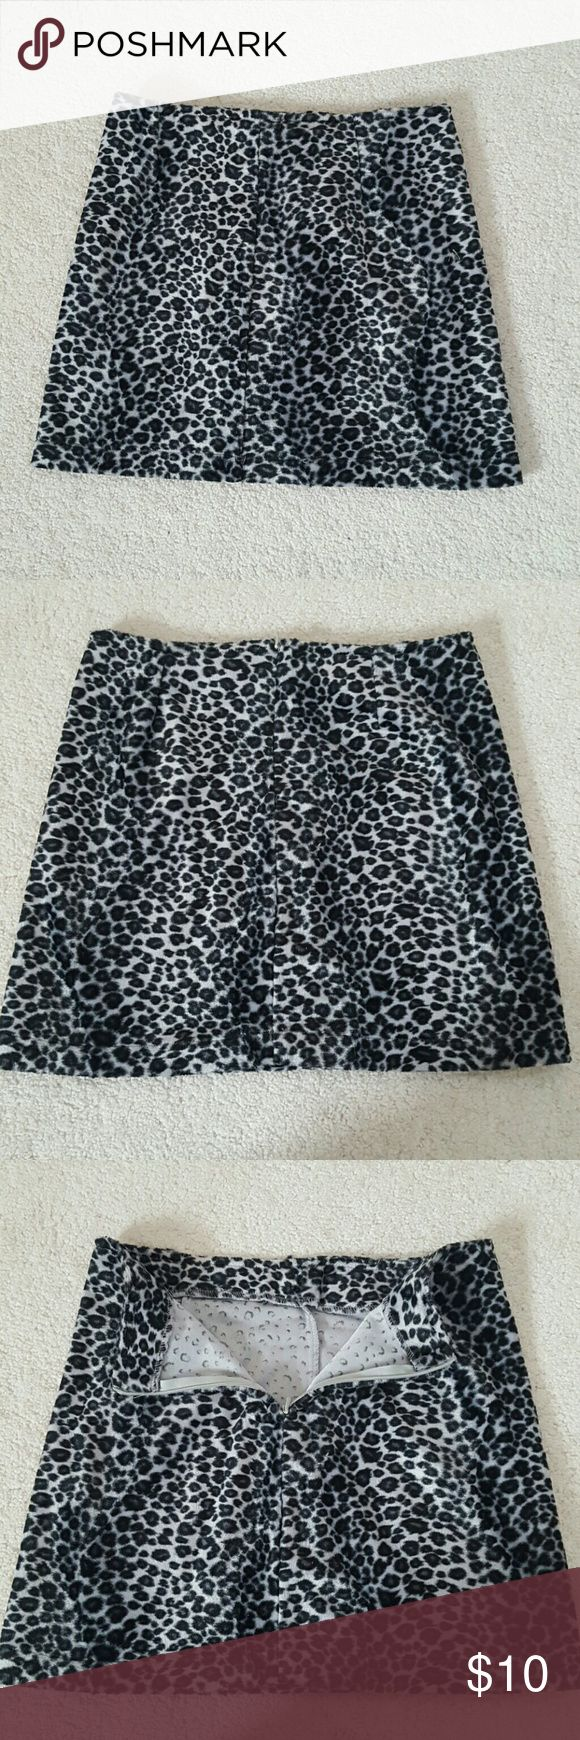 Limited Too animal print skirt Girls Size 10 limited Too animal print mini skirt..faux fur fabric..zipper in back so comfy and trendy perfect condition limited Too  Bottoms Skirts